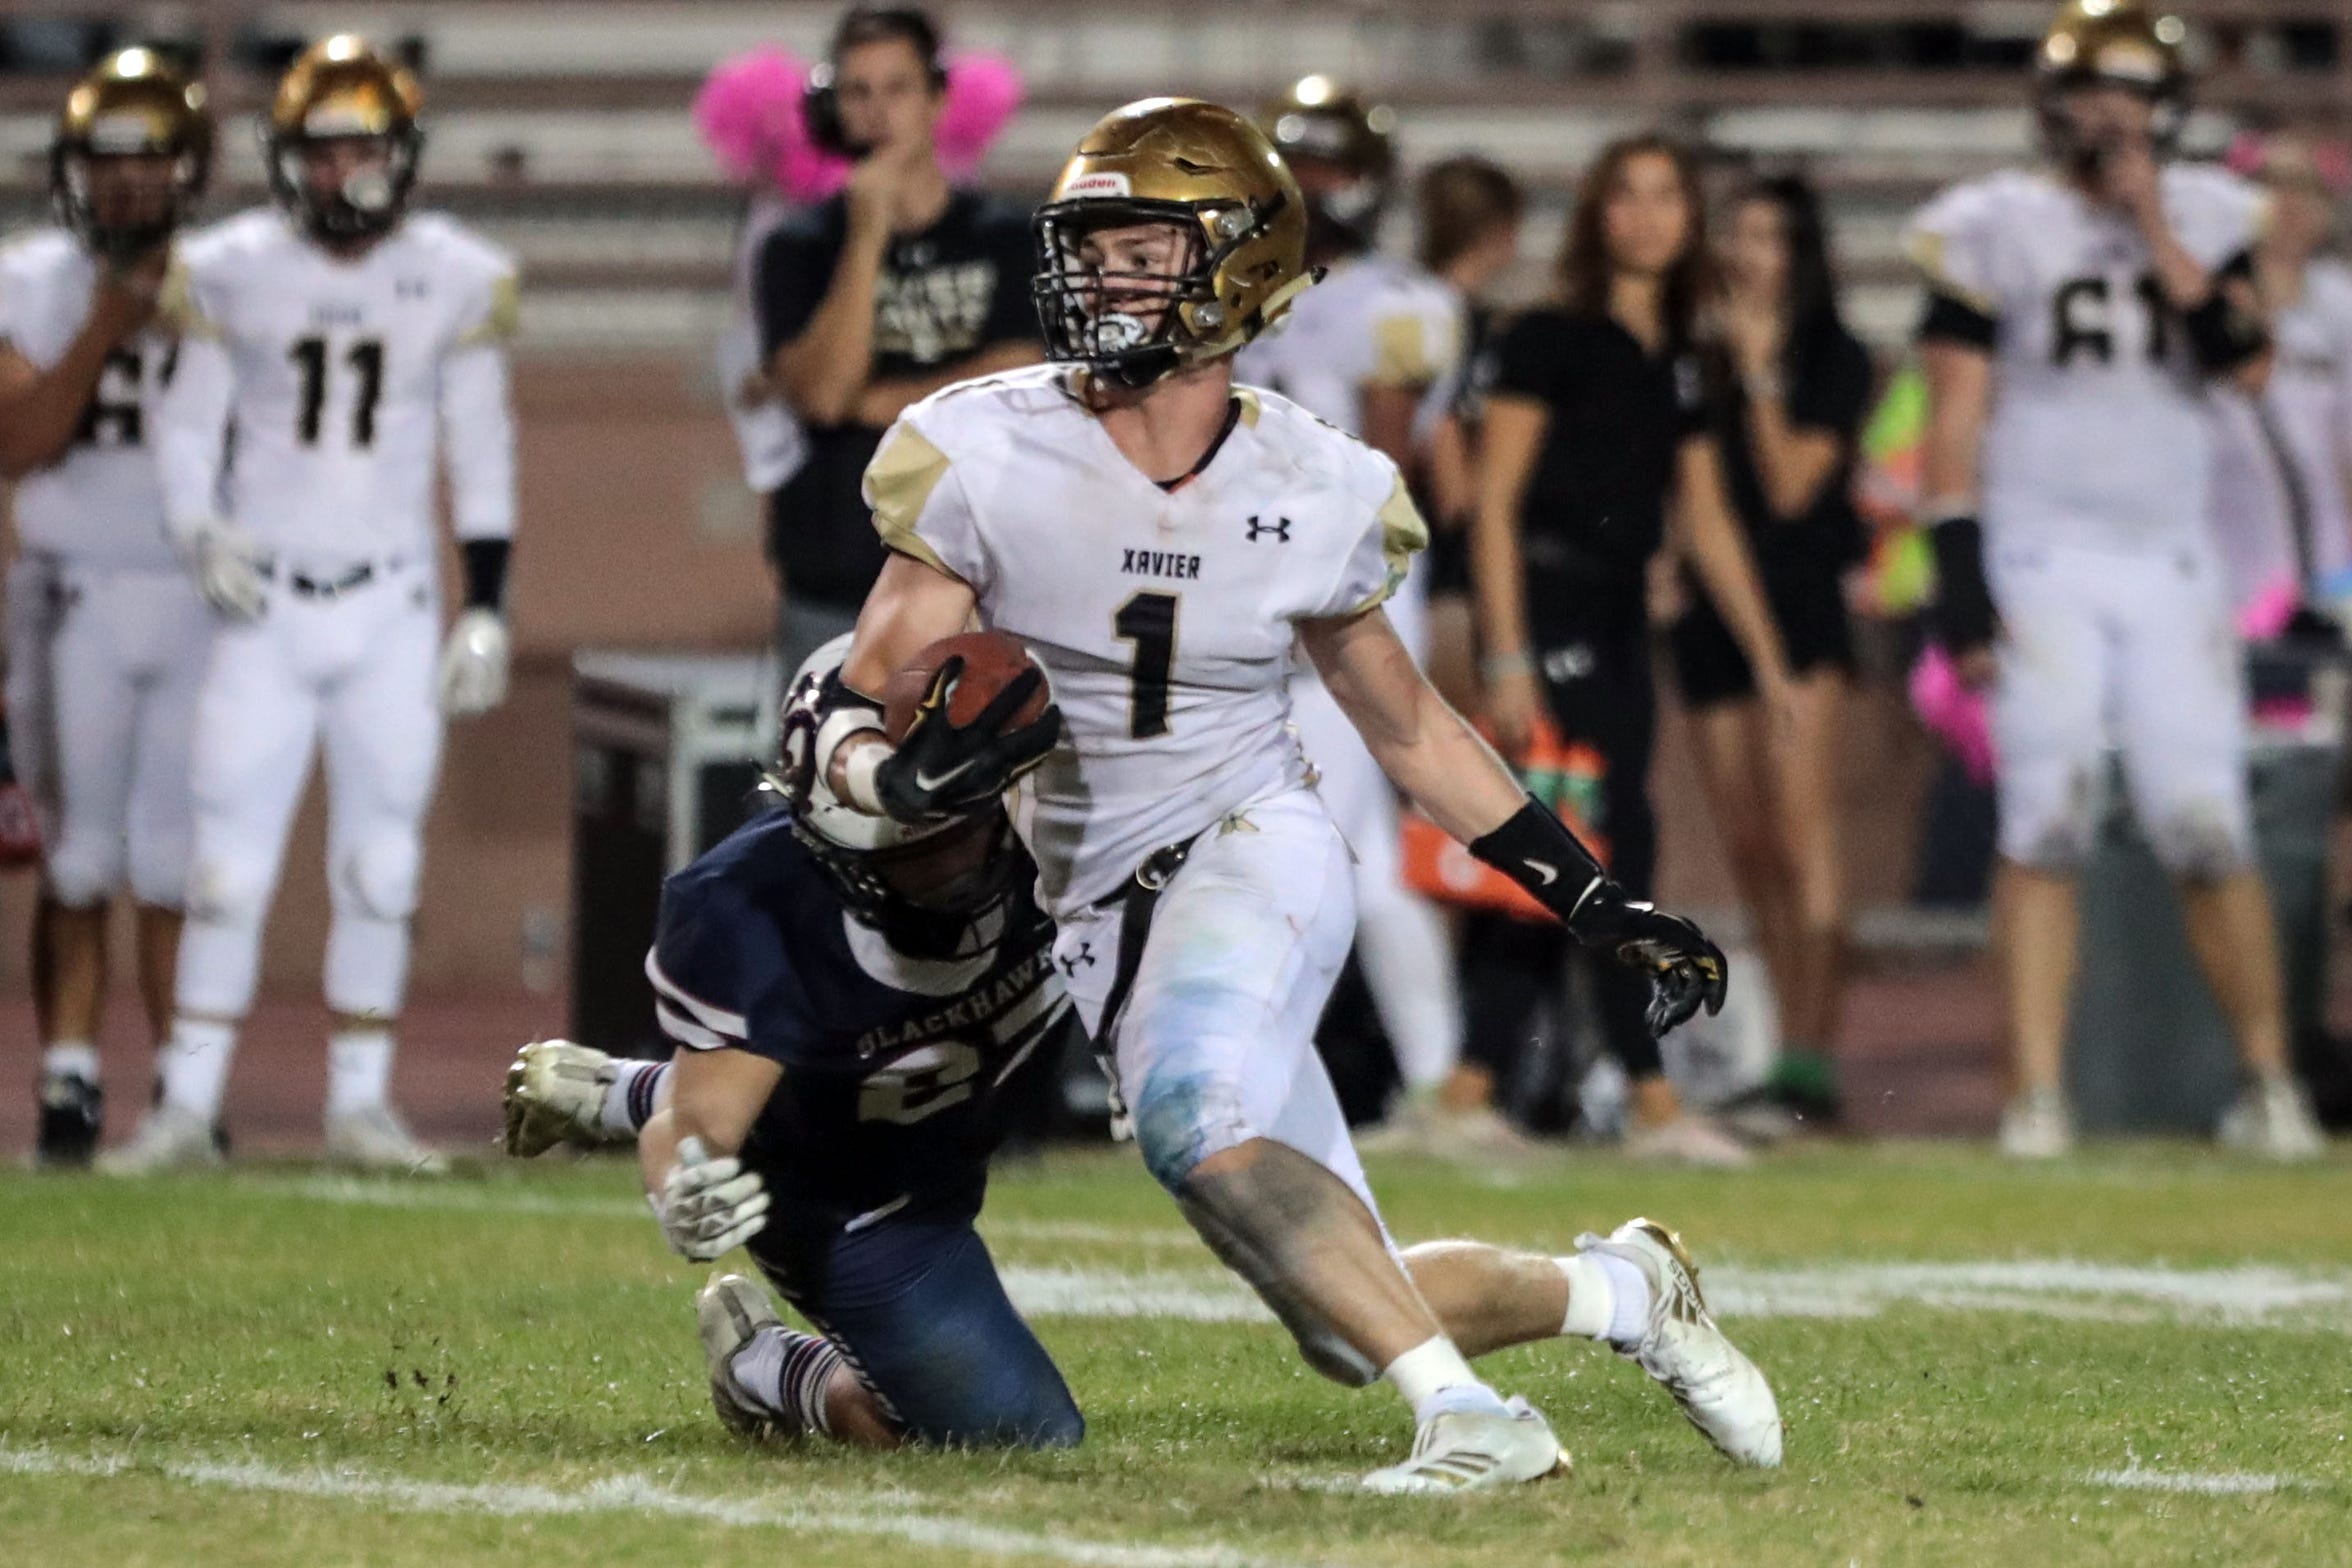 Xavier Prep's Tommy Branconier carries the ball against La Quinta on Friday, October 26, 2018 in La Quinta.